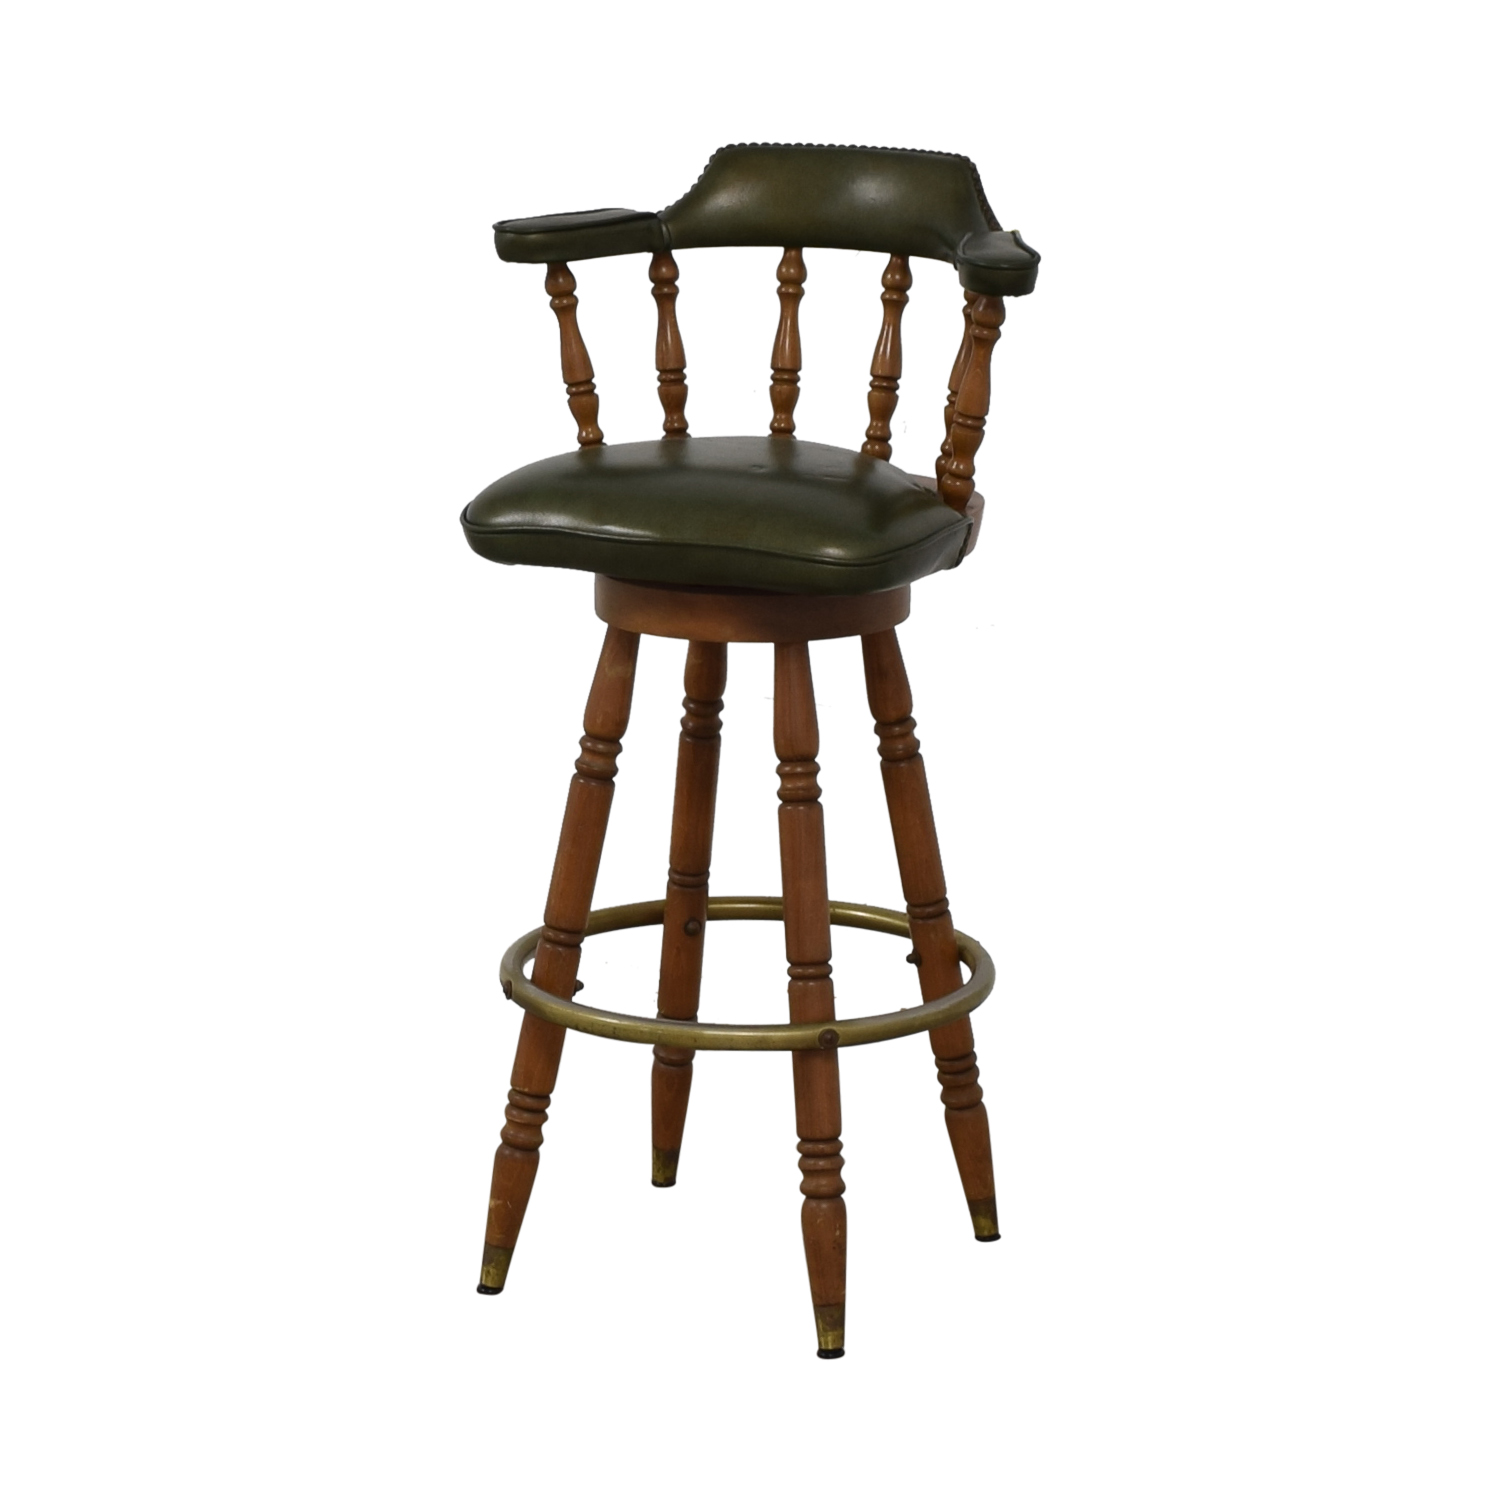 buy Vintage Green Leather Swivel Bar Stool  Stools